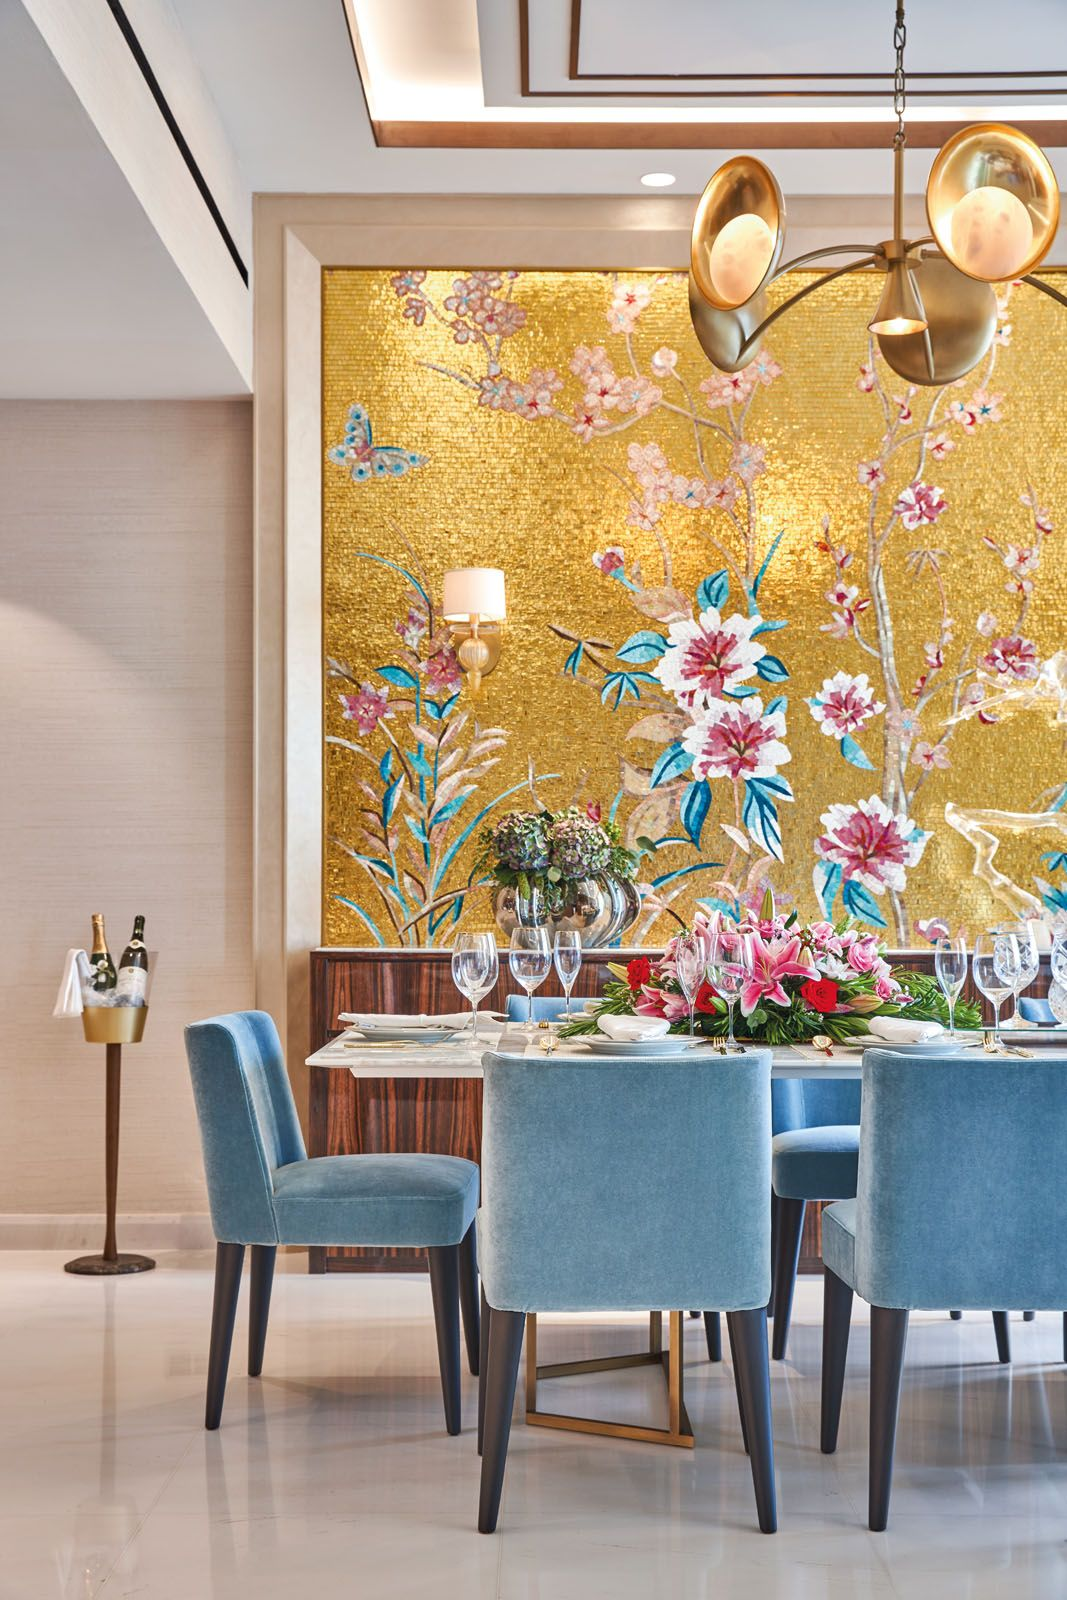 Home Tour This Apartment Combines Good Feng Shui With Colourful Interiors Tatler Hong Kong